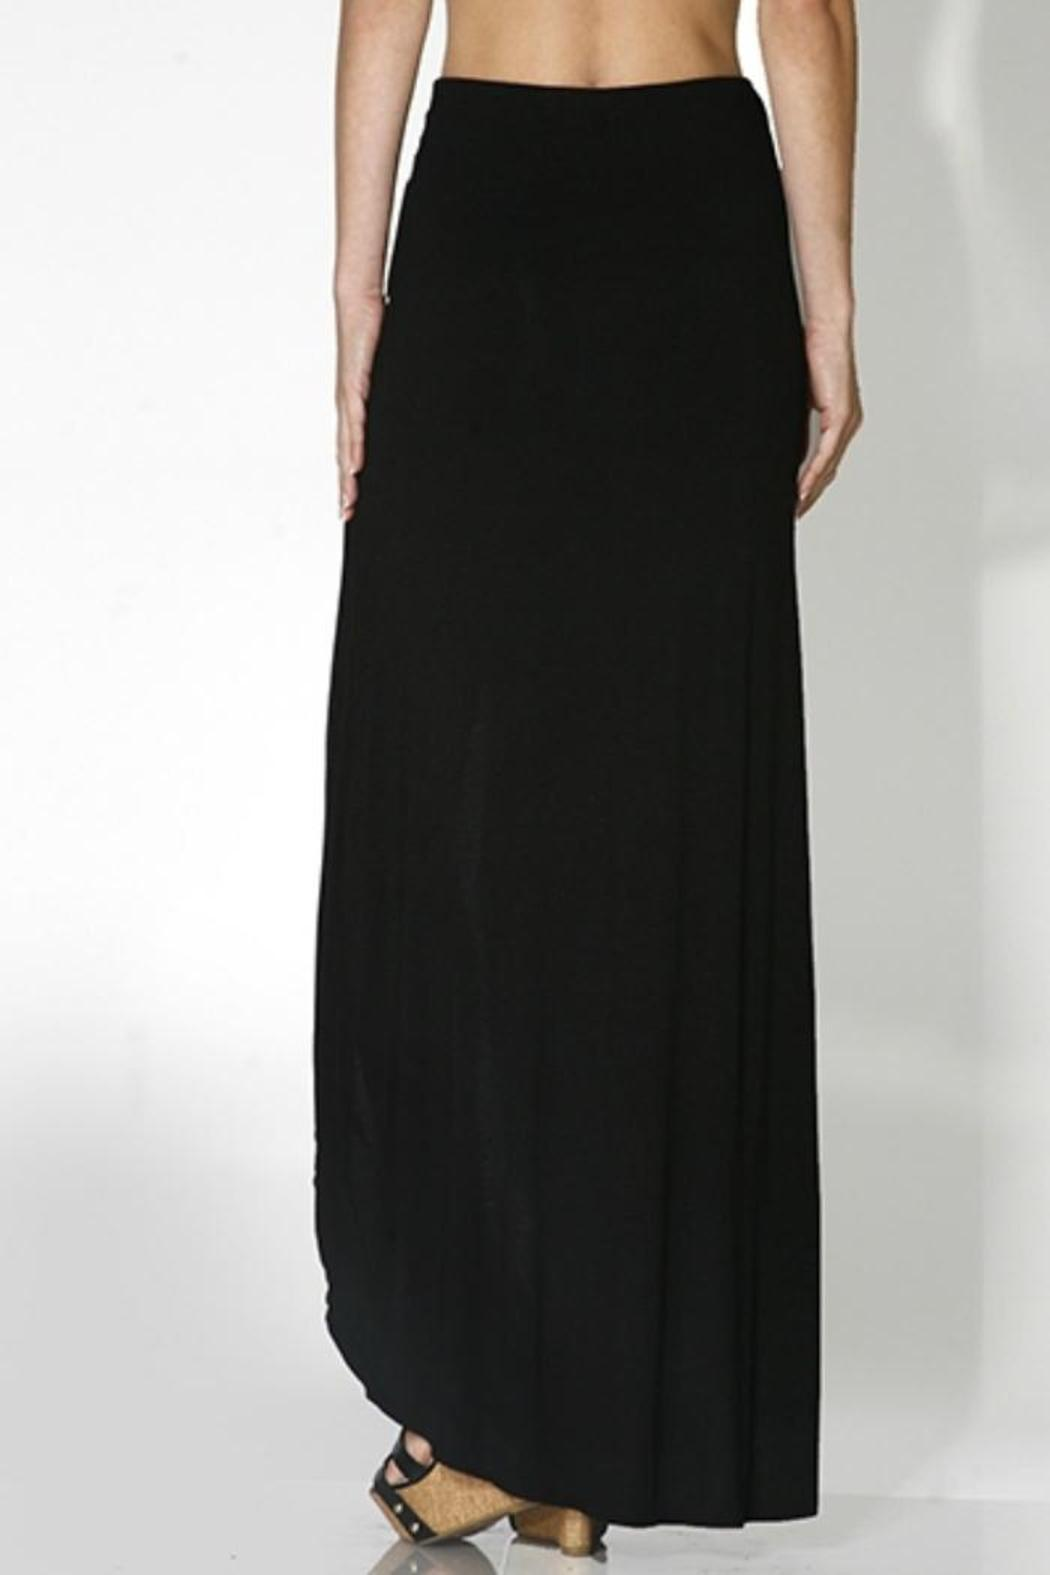 active usa tulip maxi skirt from florida by on trend